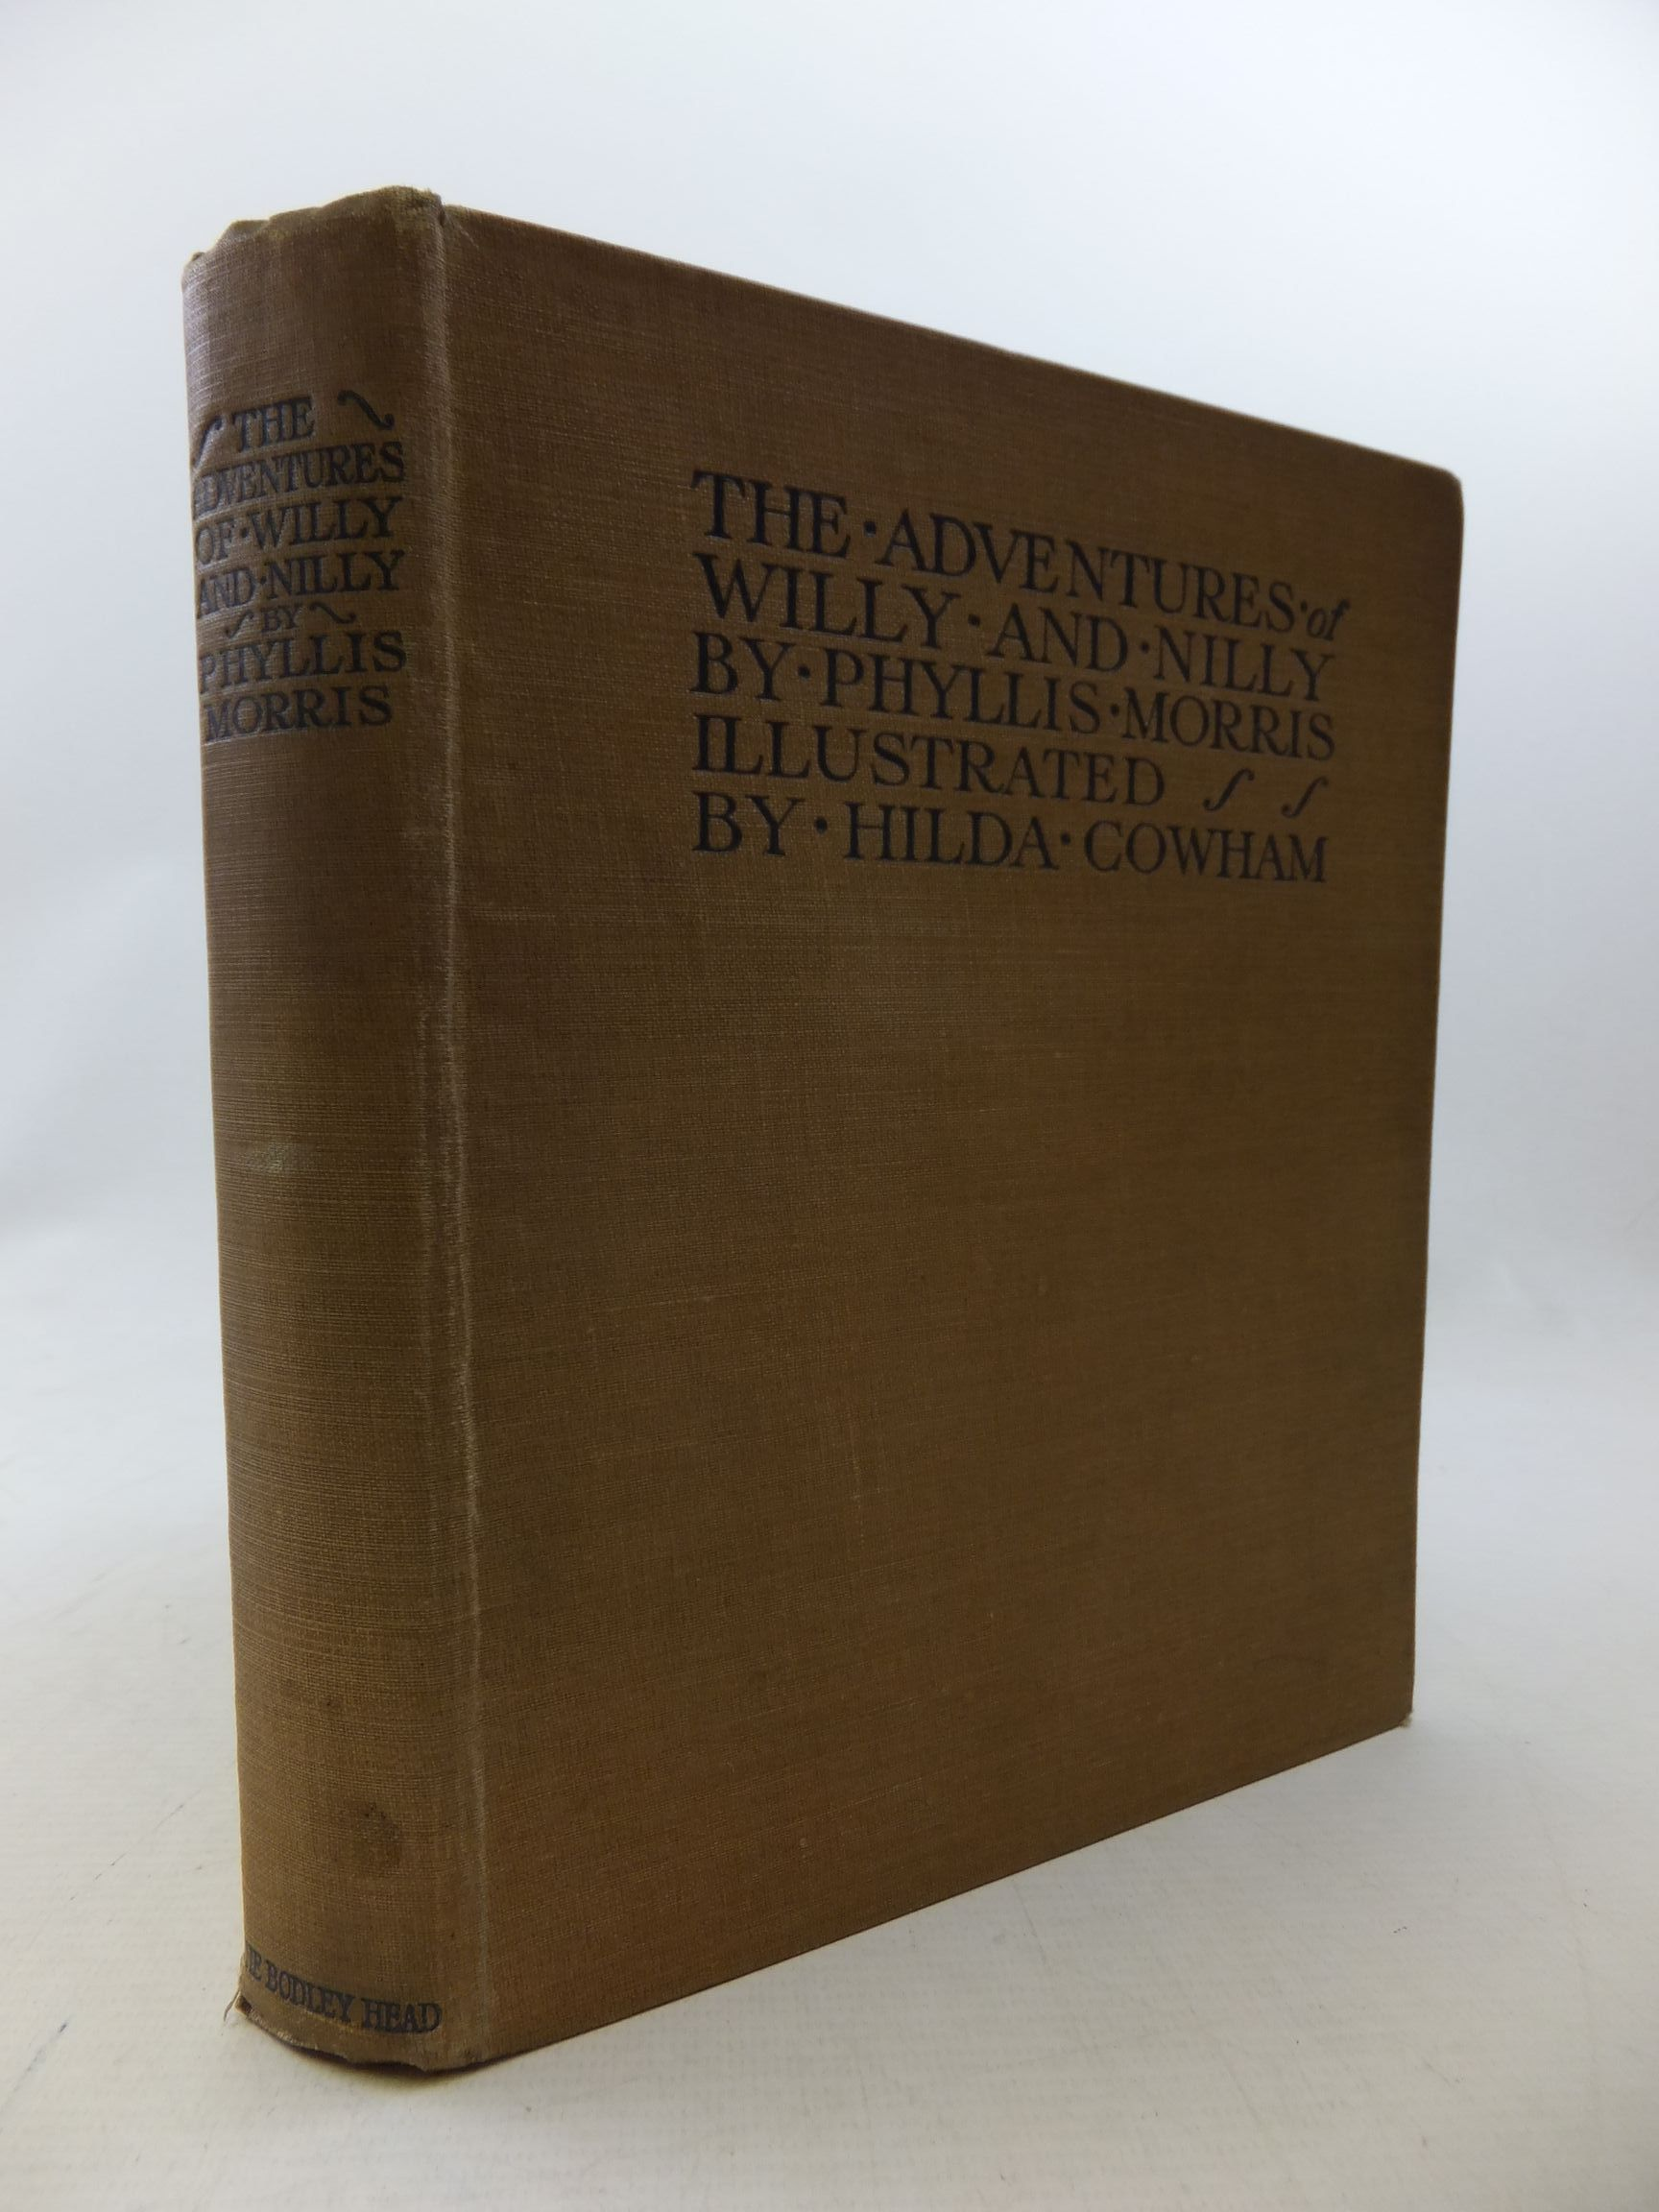 Photo of THE ADVENTURES OF WILLY AND NILLY written by Morris, Phyllis illustrated by Cowham, Hilda published by John Lane The Bodley Head (STOCK CODE: 1710683)  for sale by Stella & Rose's Books